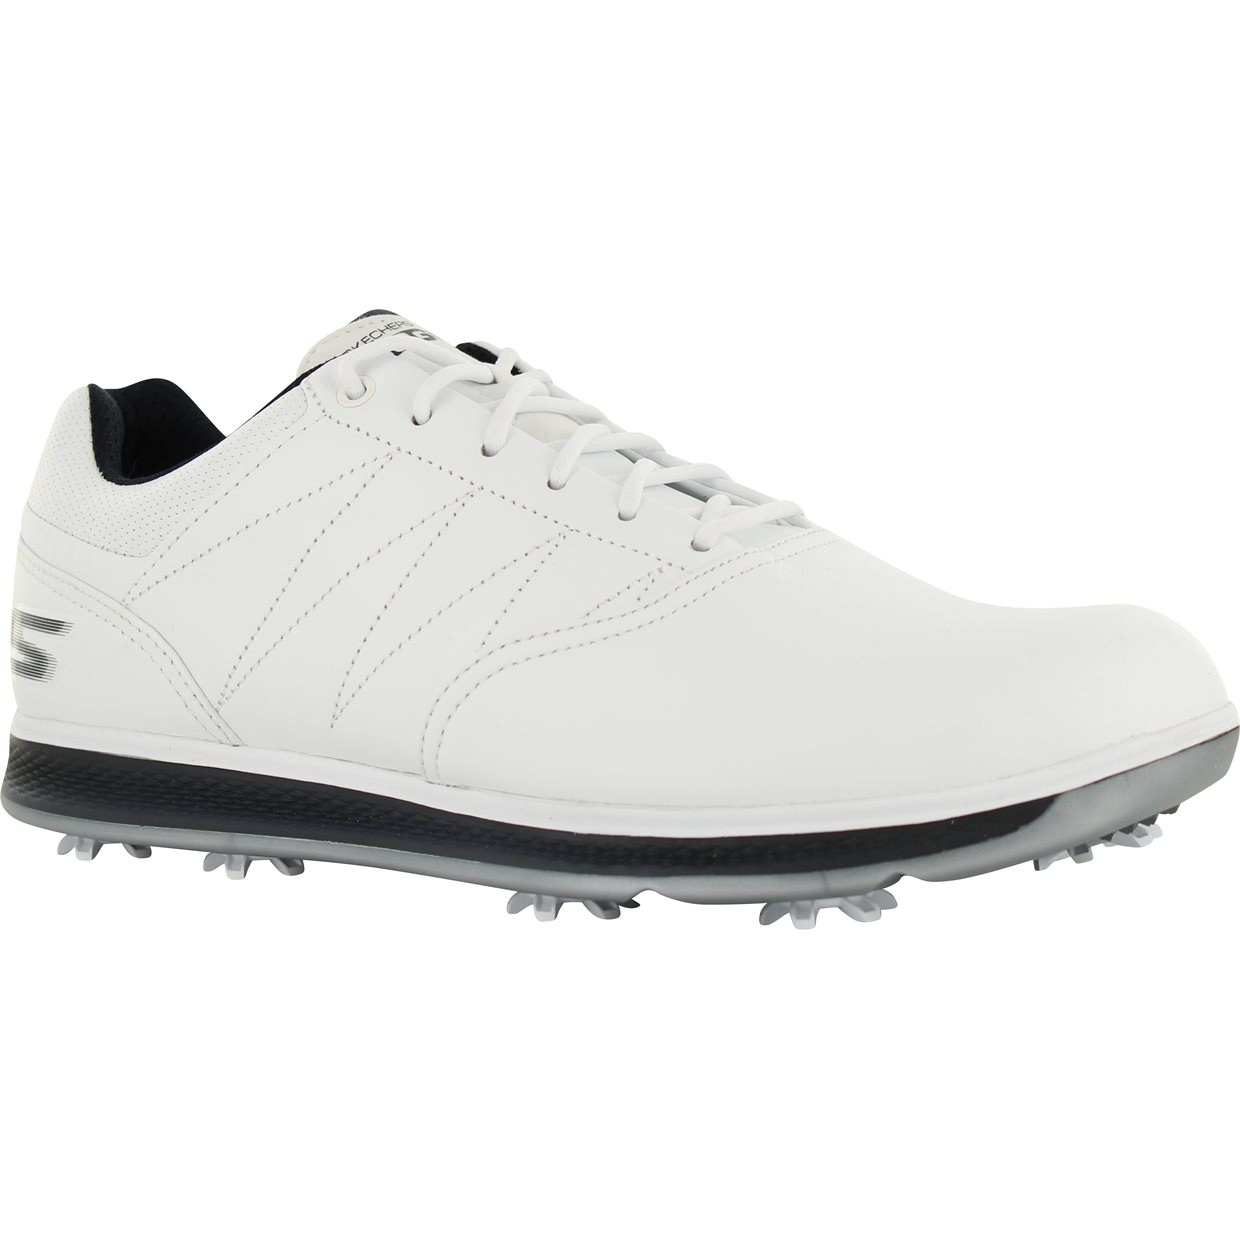 Sketcher Golf Shoes Womens